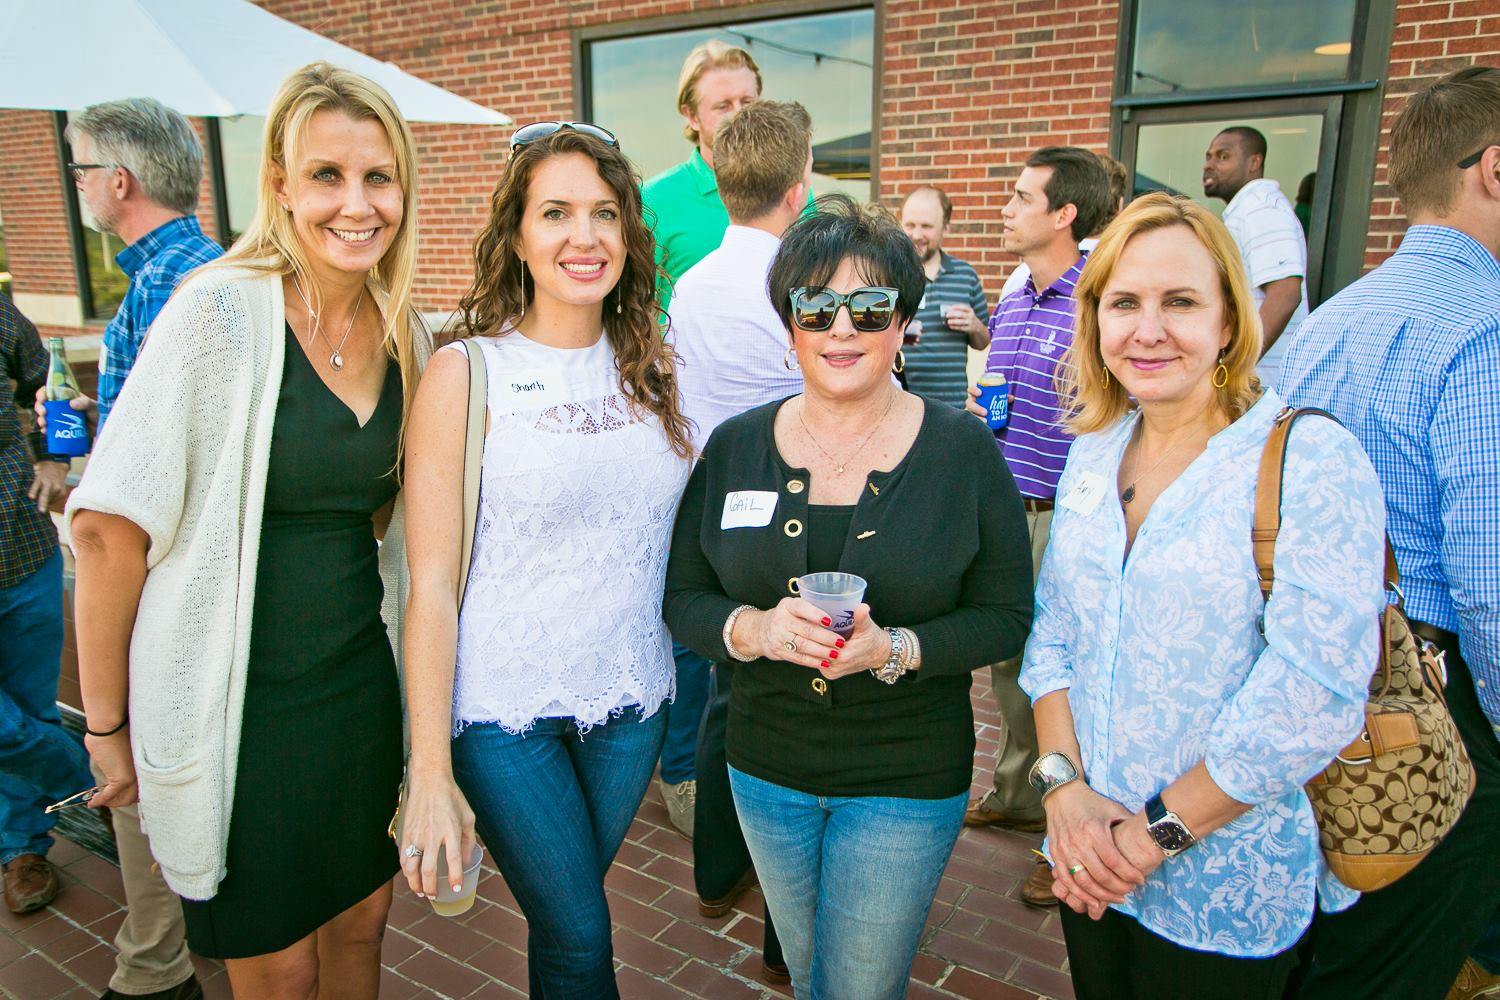 Kristi Svec Simmons at an AQUILA Commercial Client Appreciation Event